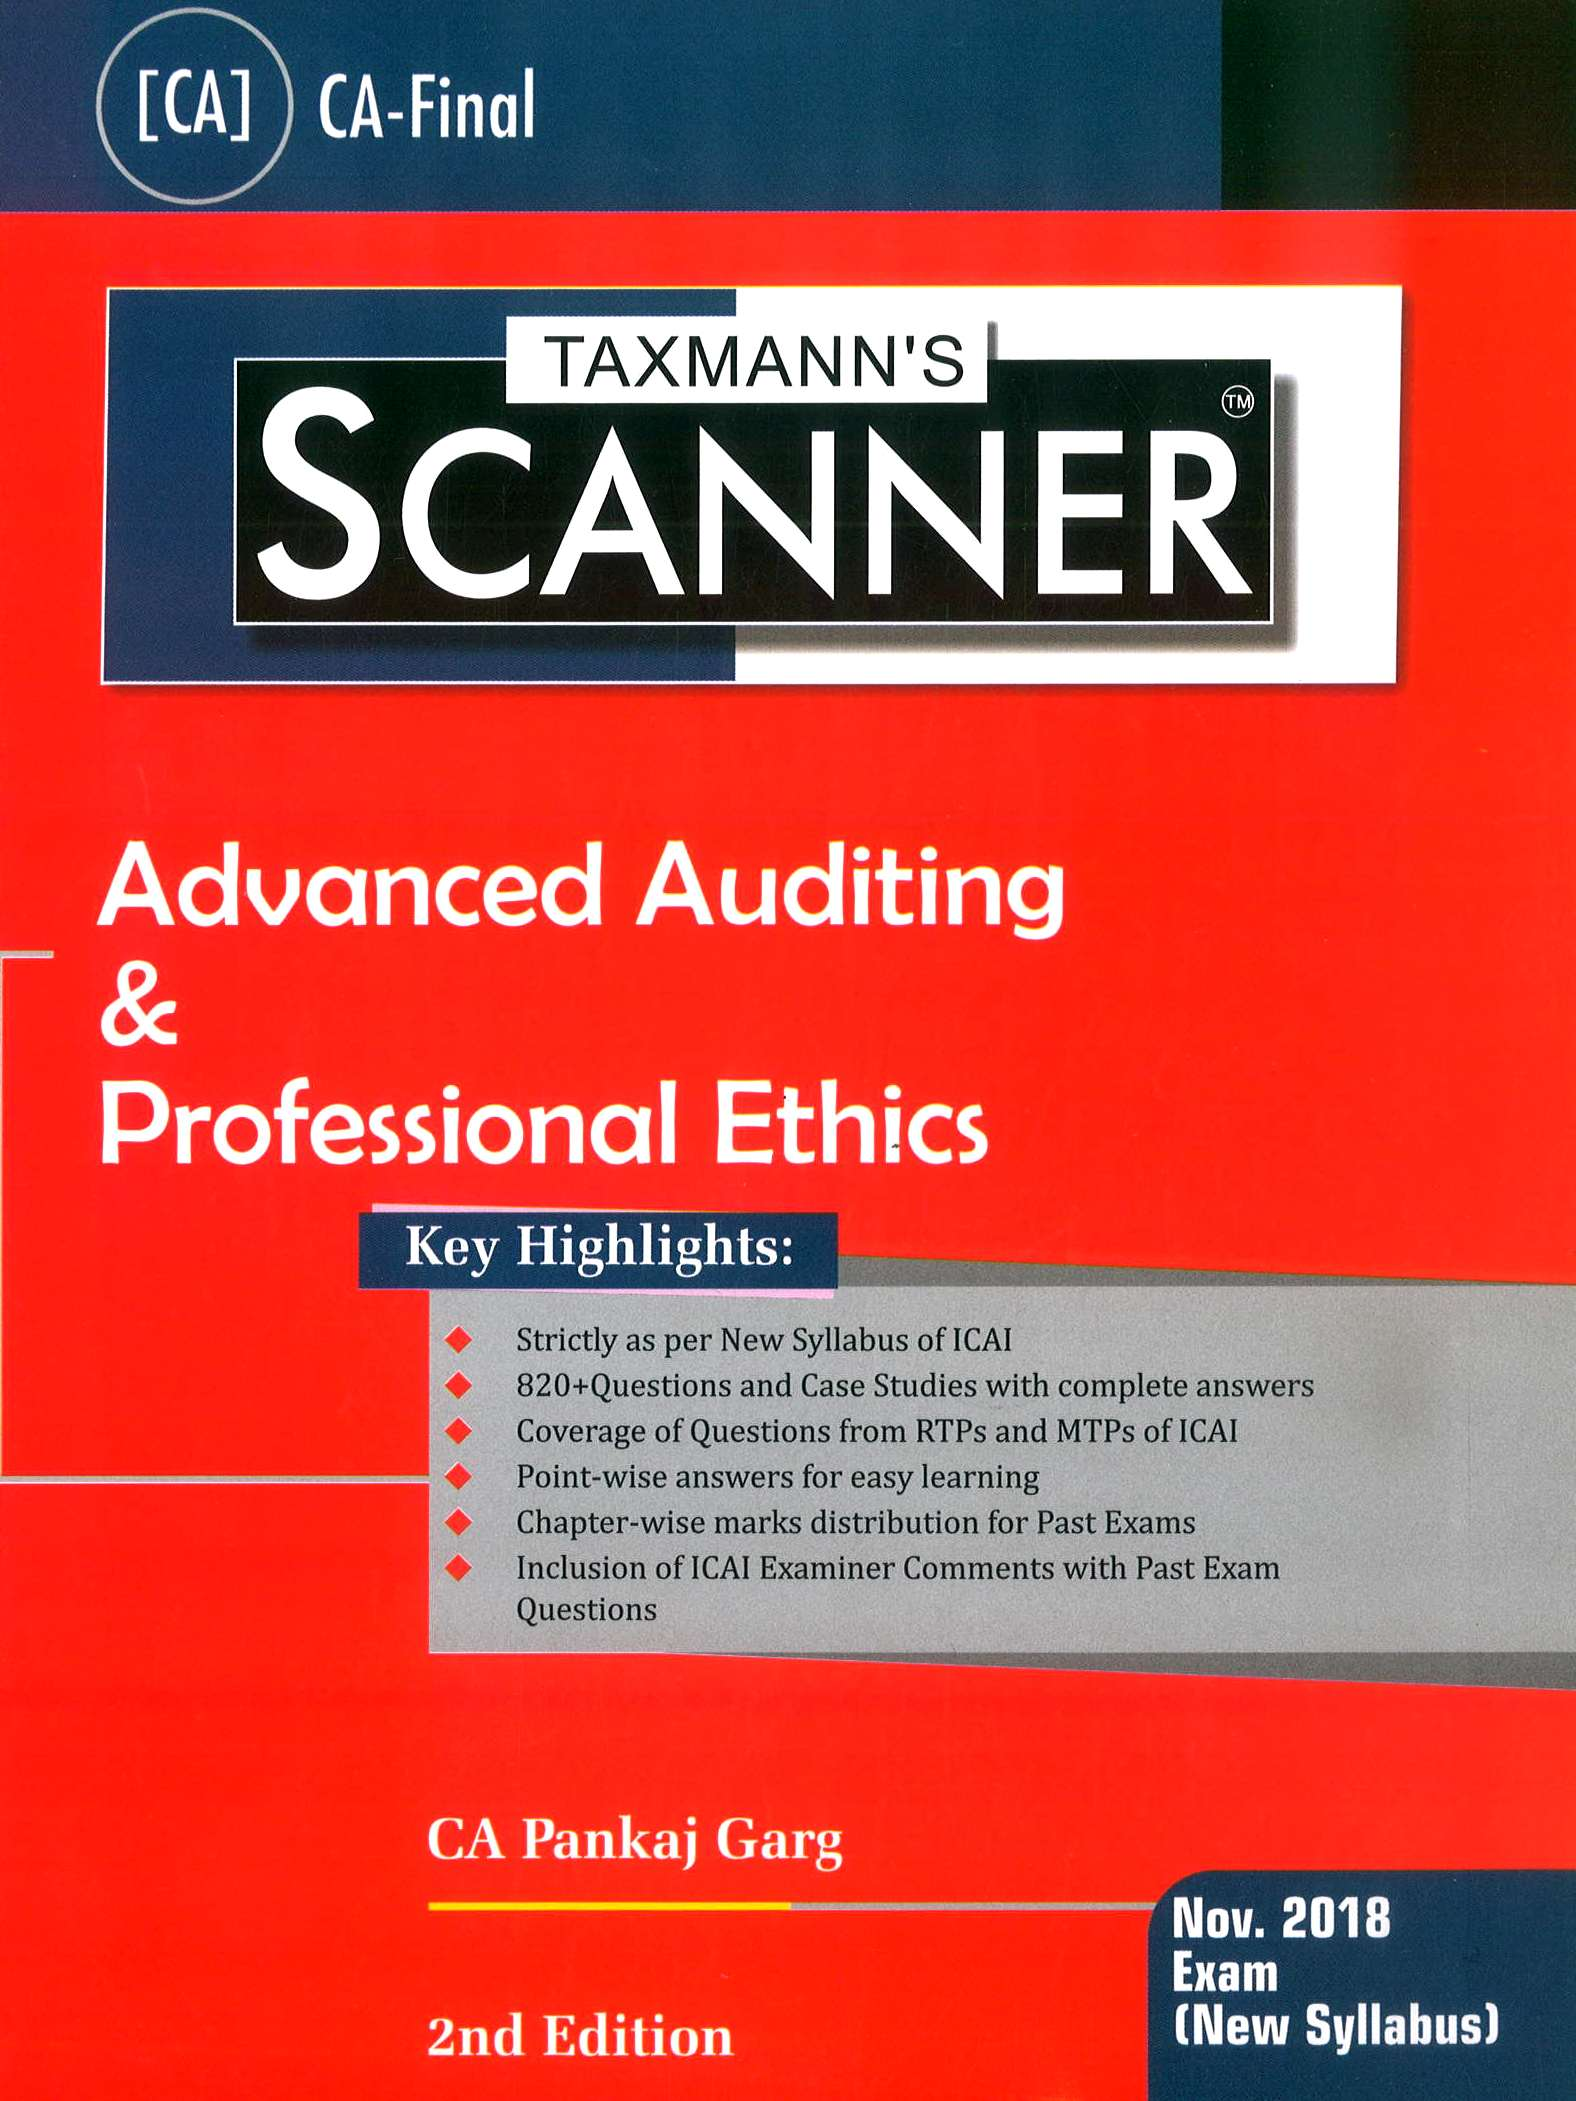 Taxmann's Scanner – Advanced Auditing & Professional Ethics (New Syllabus) for Nov 2018 Exam for CA Final by CA Pankaj Garg (Taxmann's Publishing) Edition 2nd 2018